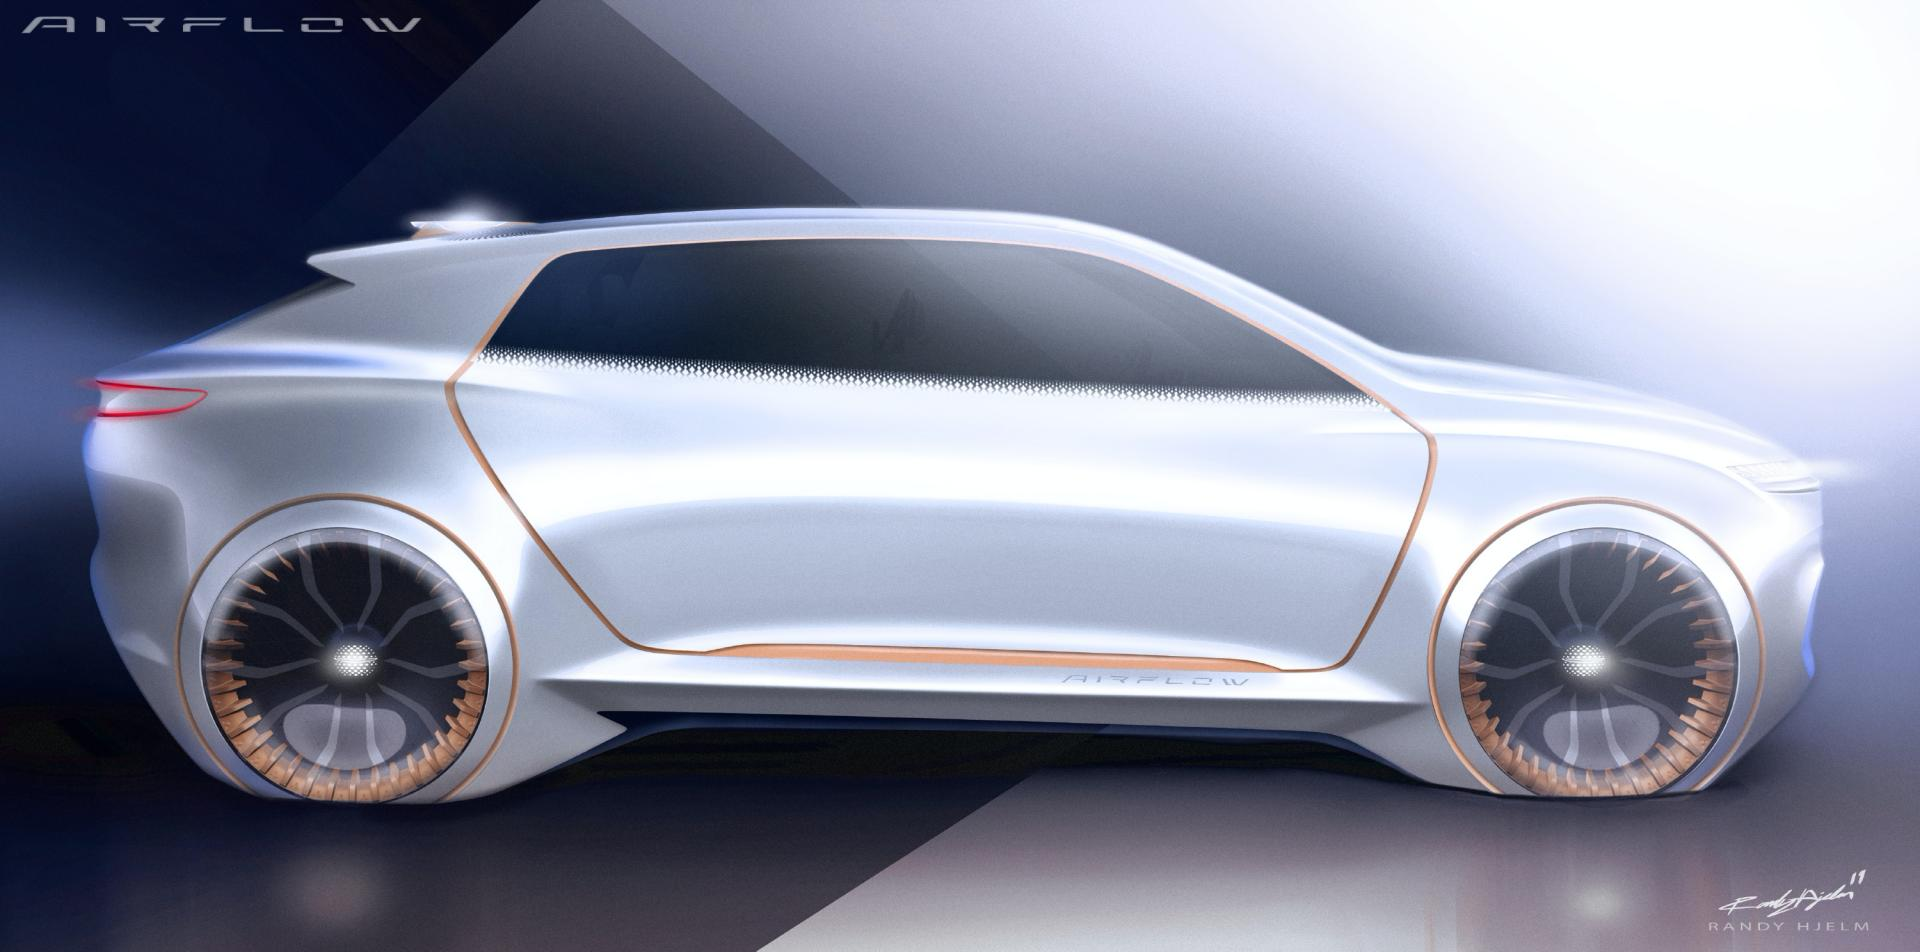 2020-Chrysler-Airflow-Vision-concept-7